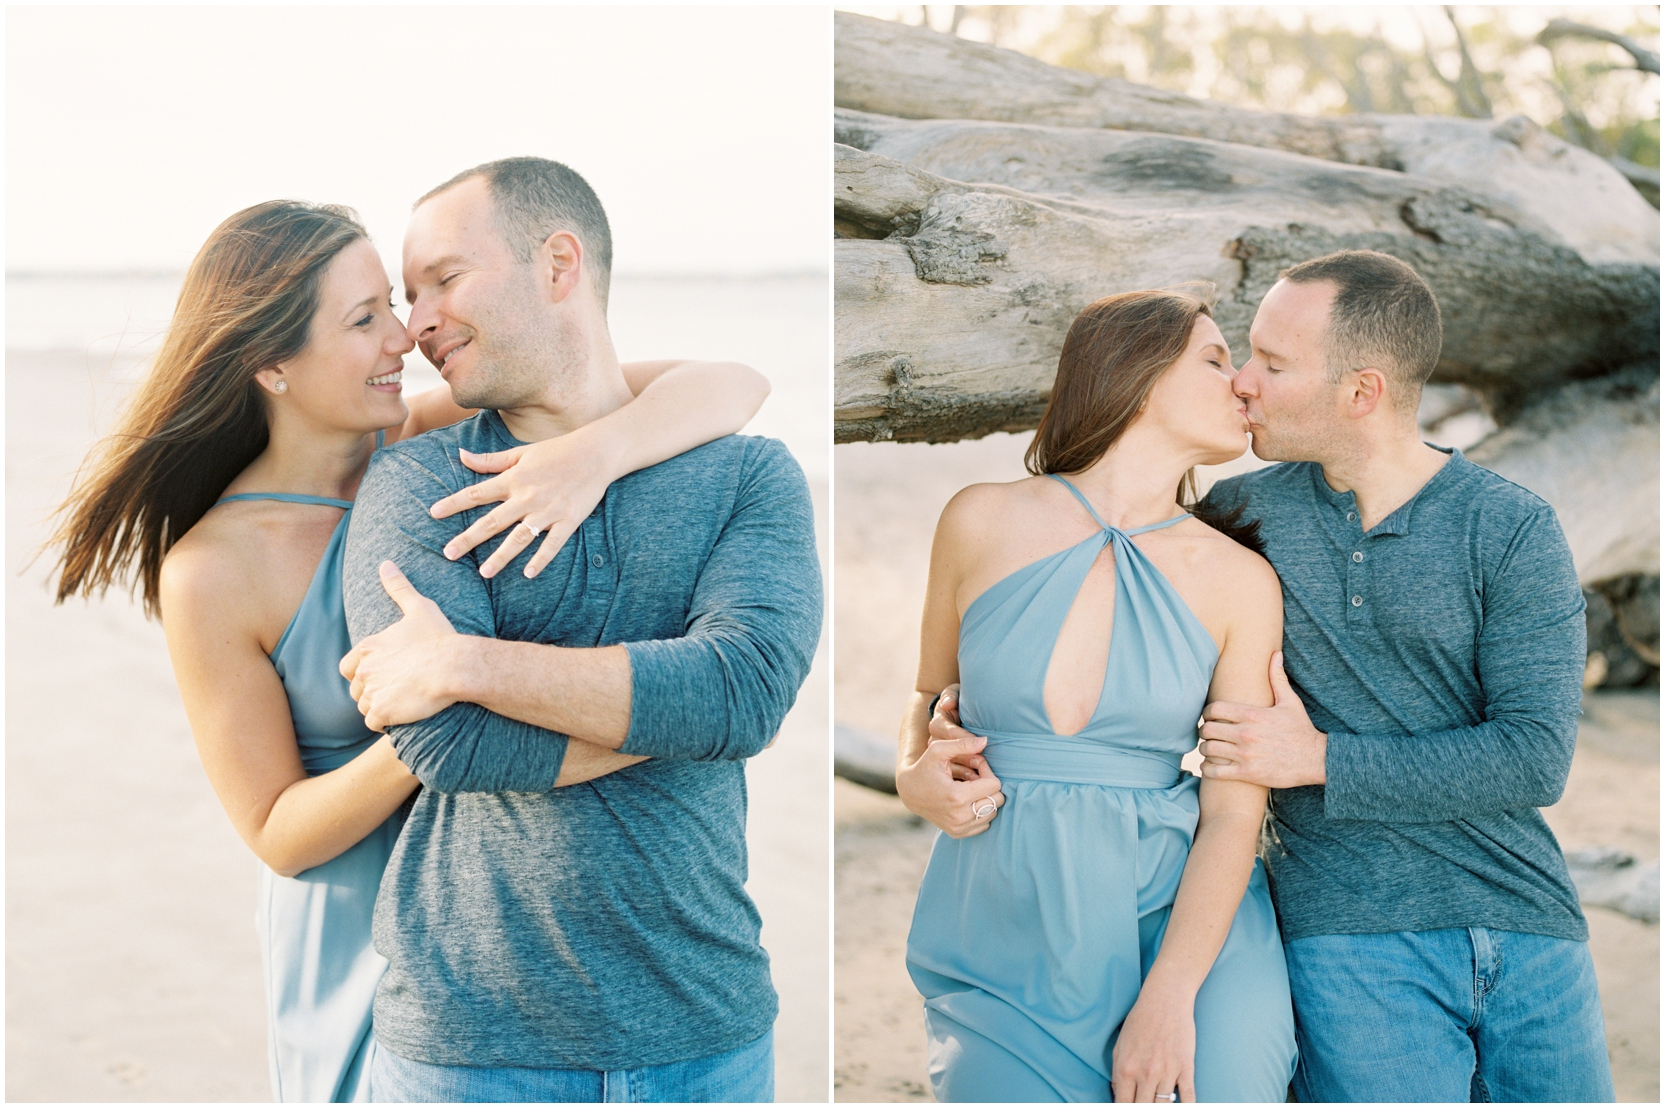 Lisa Silva Photography -Engagement Session at Big Talbot Island- Jacksonville and North East Florida Fine Art Film Photographer_0033.jpg